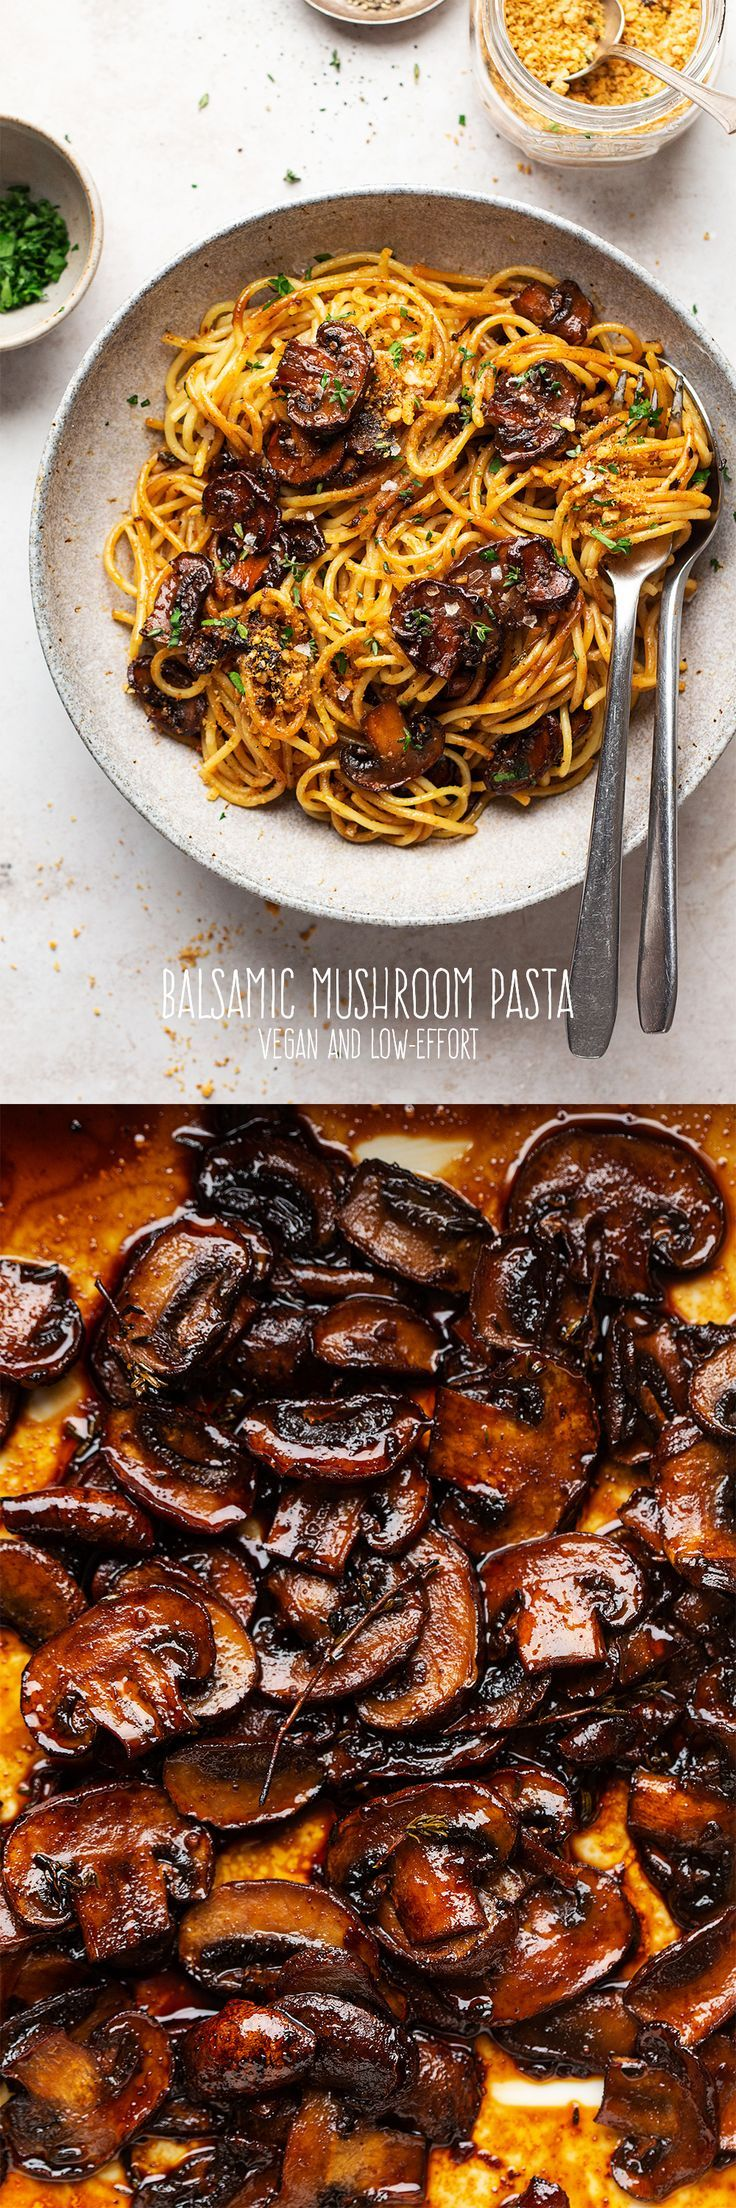 Vegan balsamic mushroom pasta Lazy Cat Kitchen Recipe